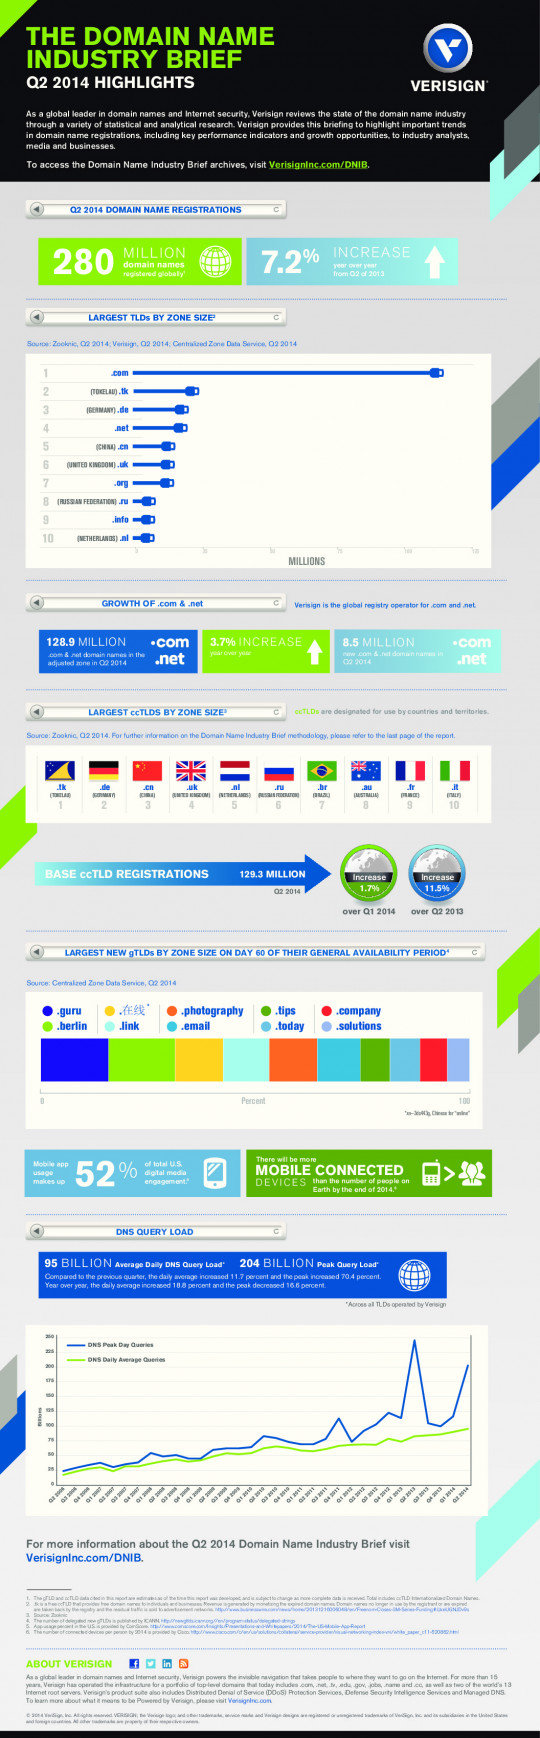 Q2 2014 Domain Name Industry Brief